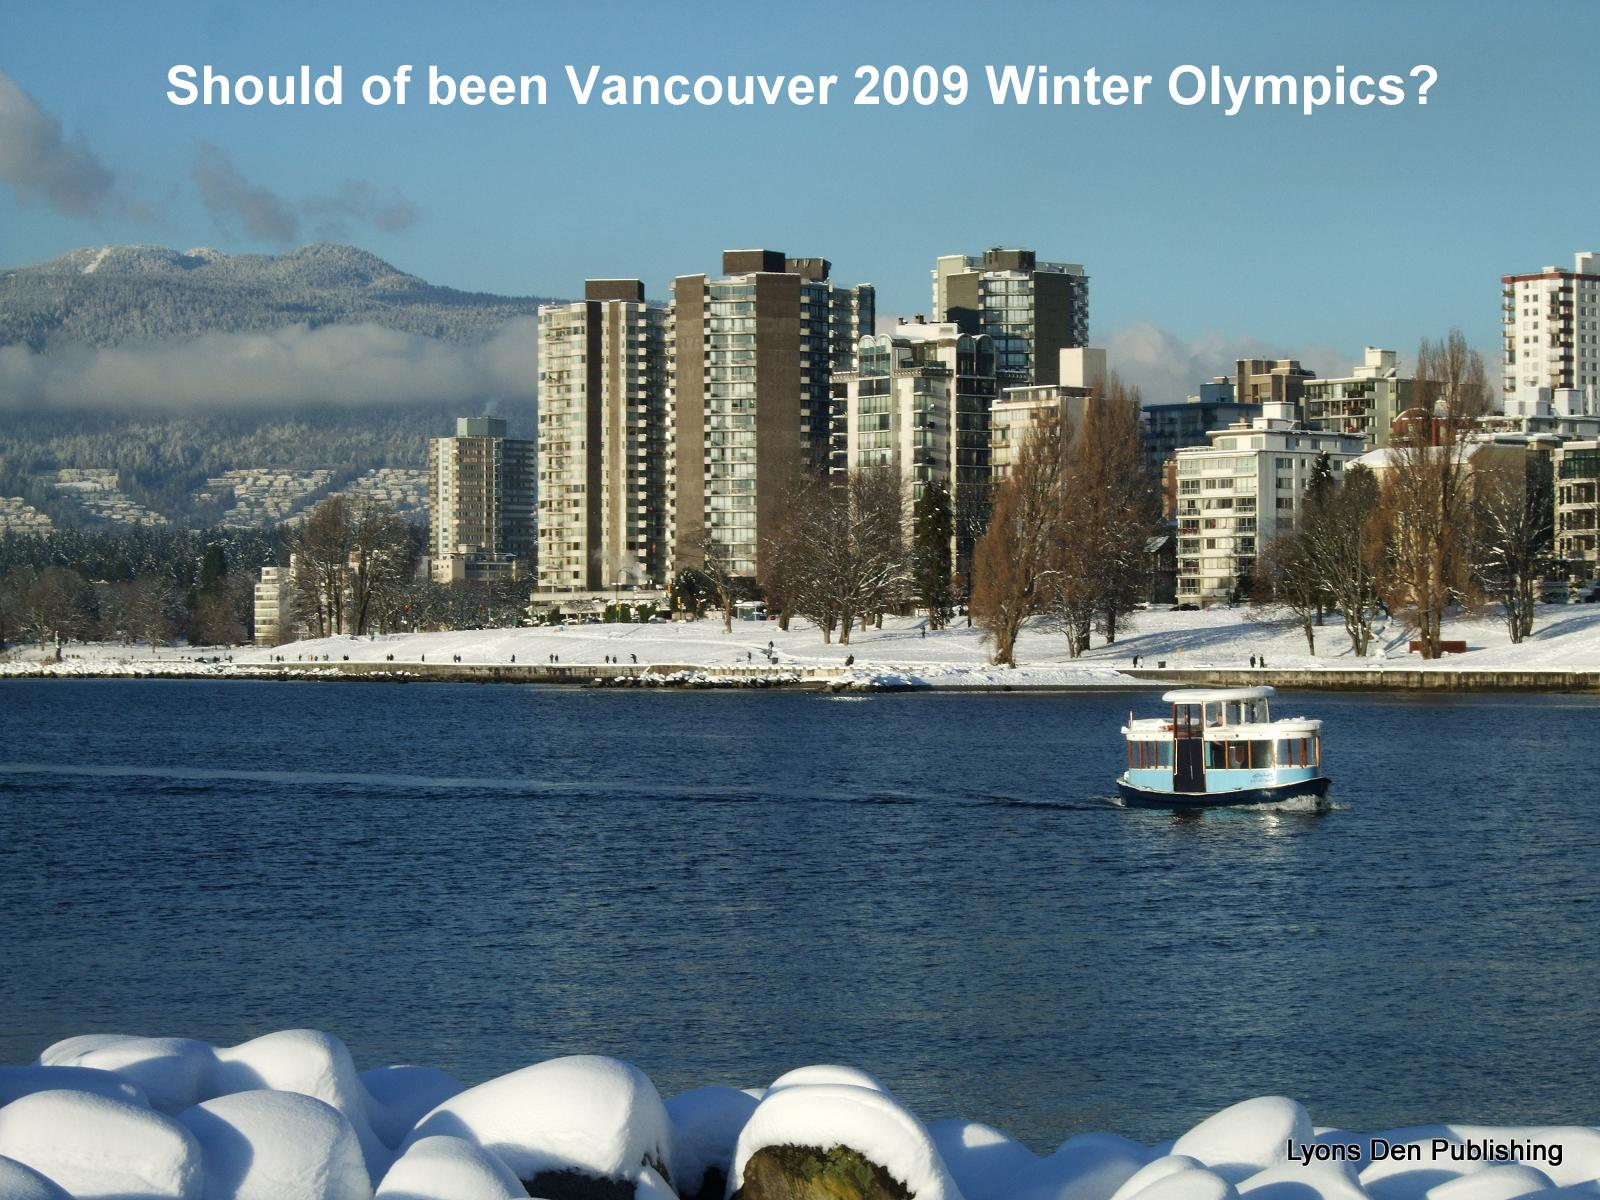 Weather Vancouver: Compare Pictures Of Snowy Vancouver 2009 And Warm 2010